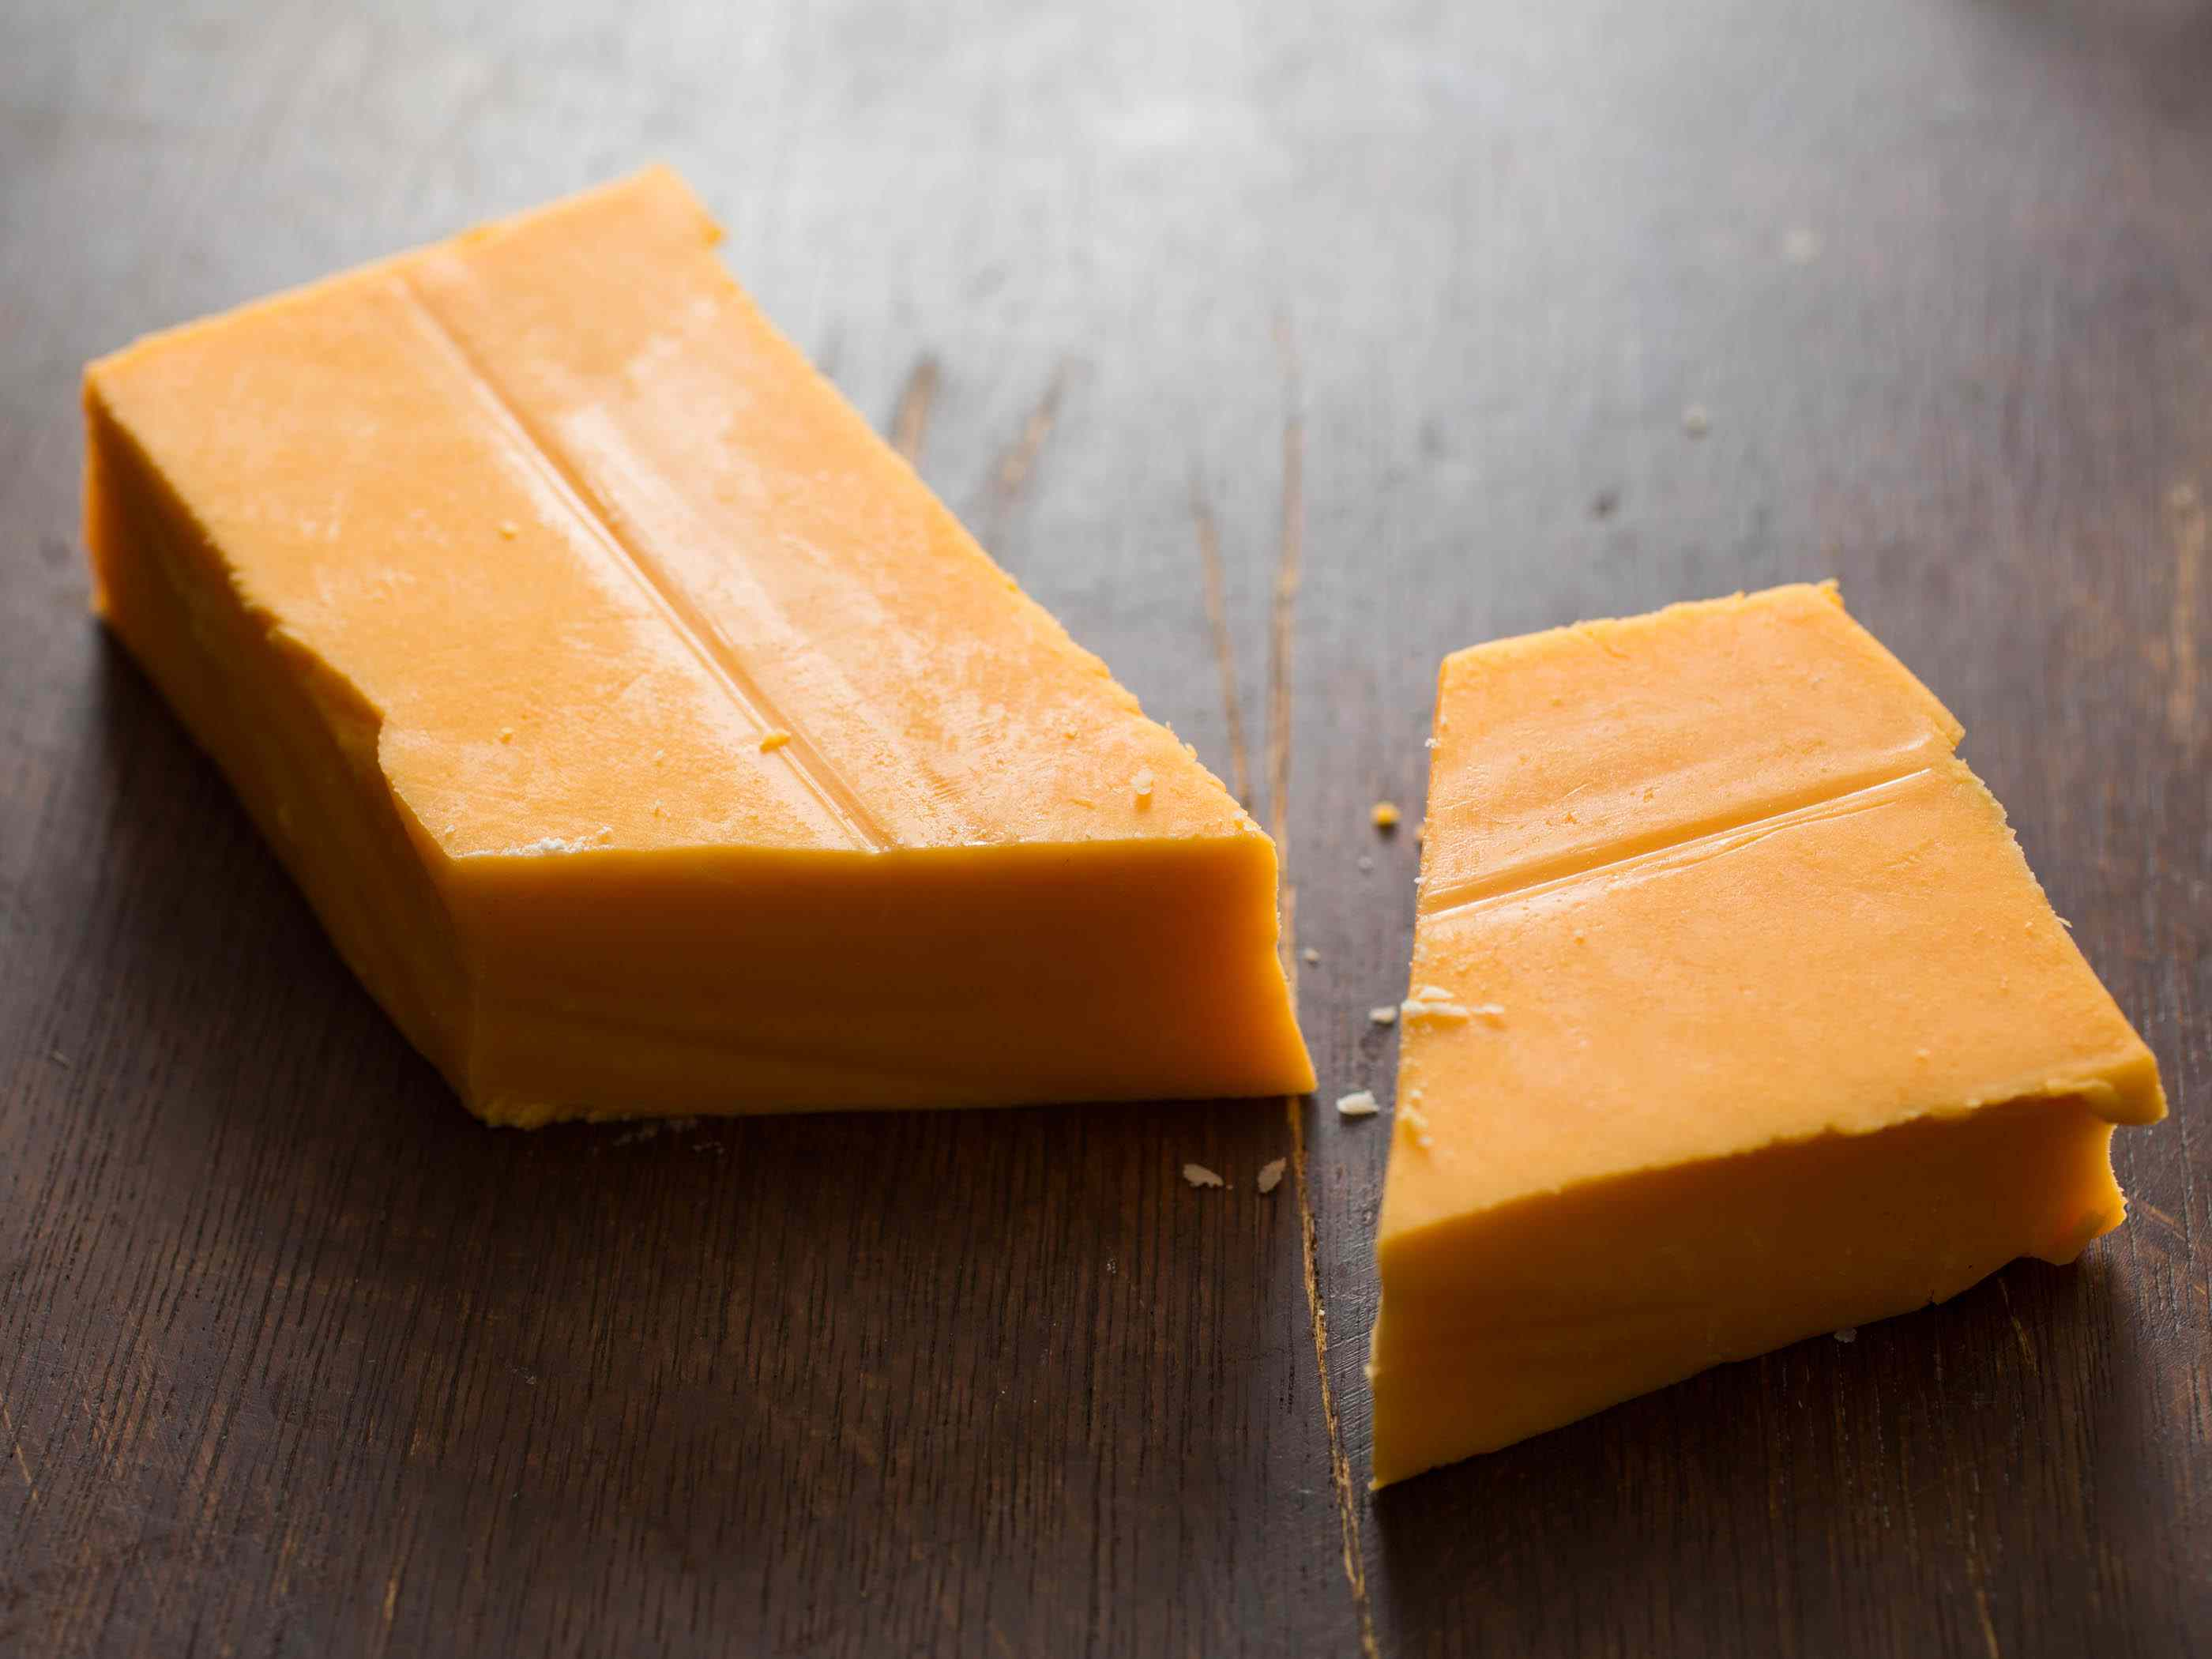 20141121-midwestern-cheese-colby-cheese-vicky-wasik-4.jpg